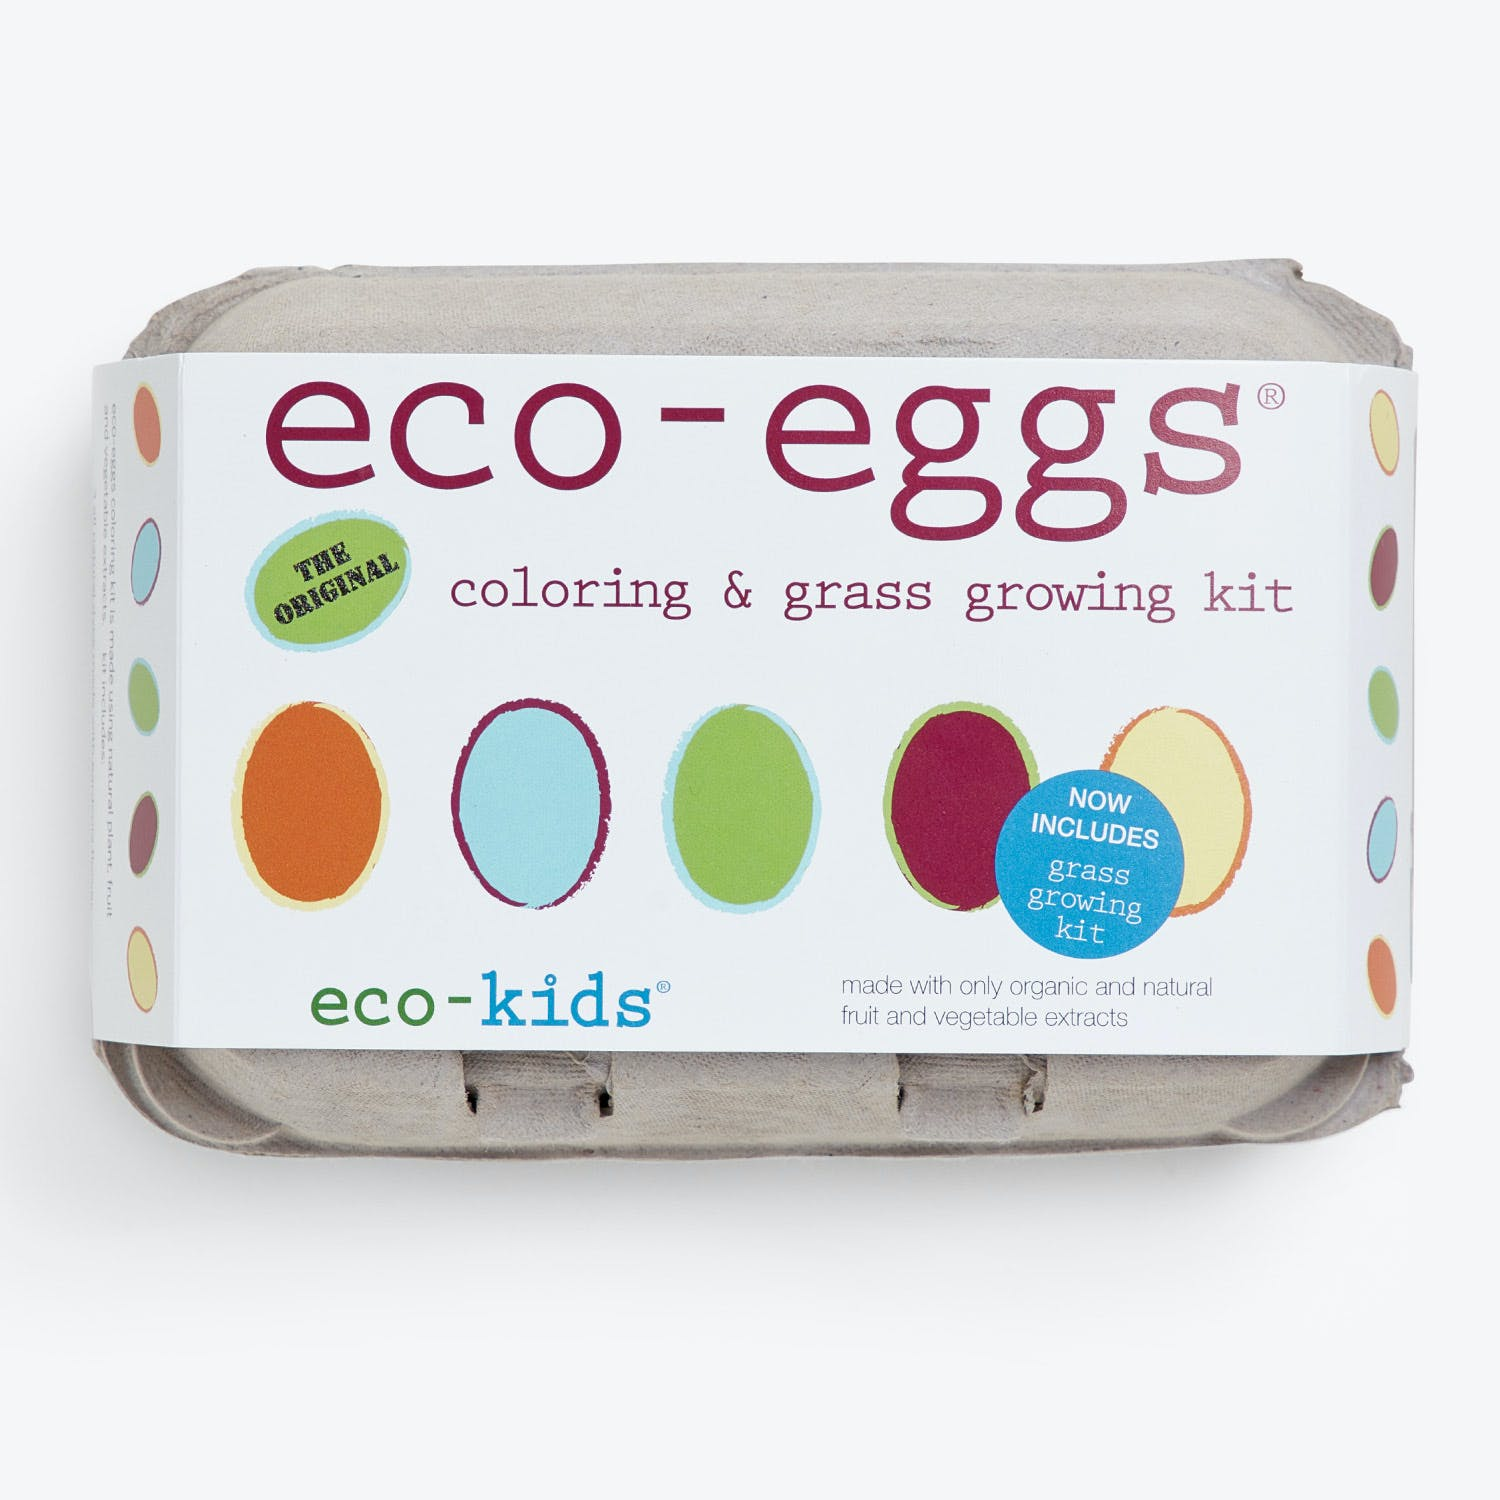 Eco Egg Coloring & Grass Growing Kit